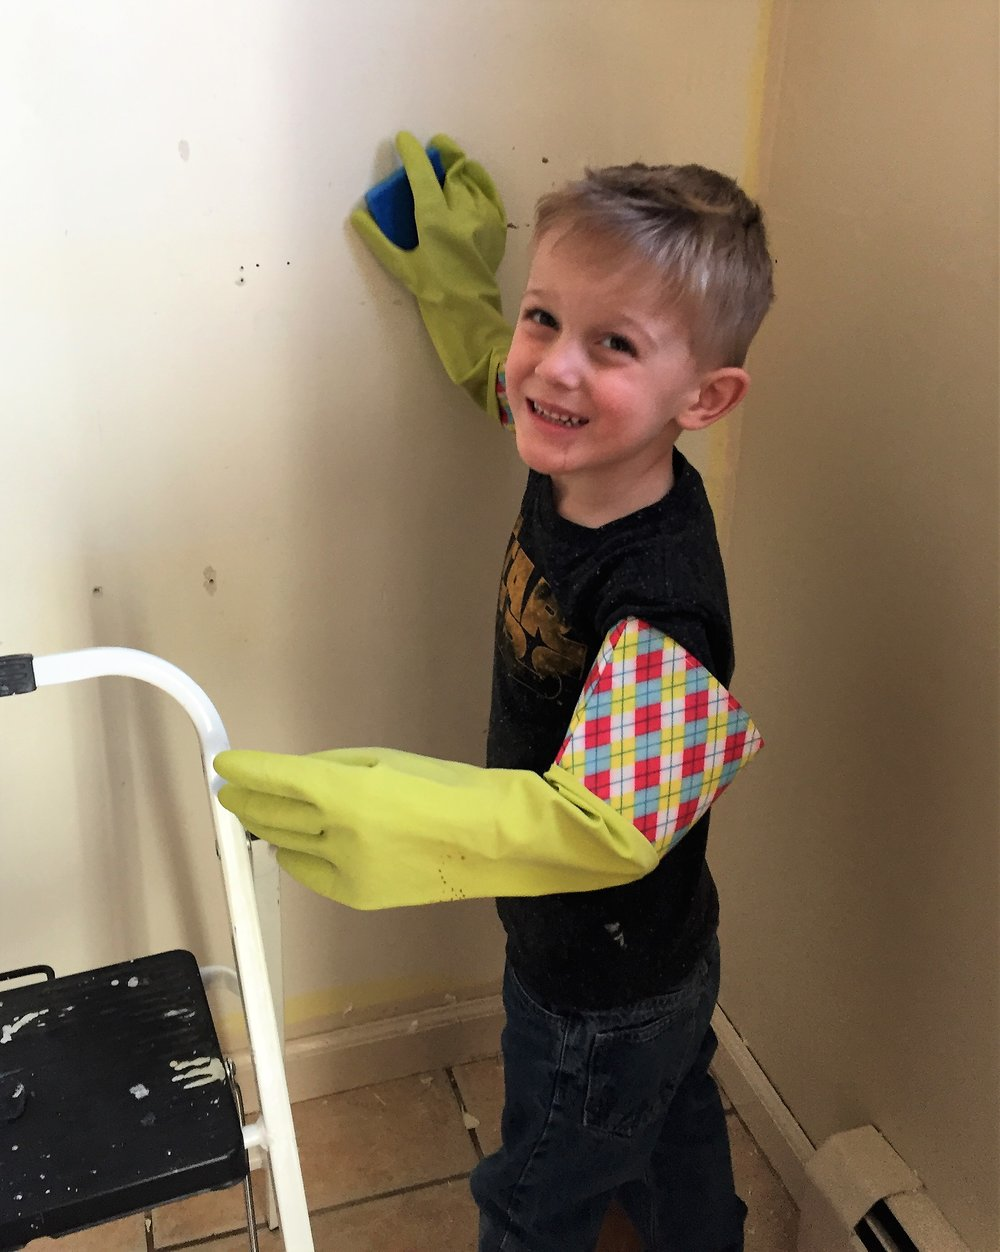 My buddy helping me clean the walls.